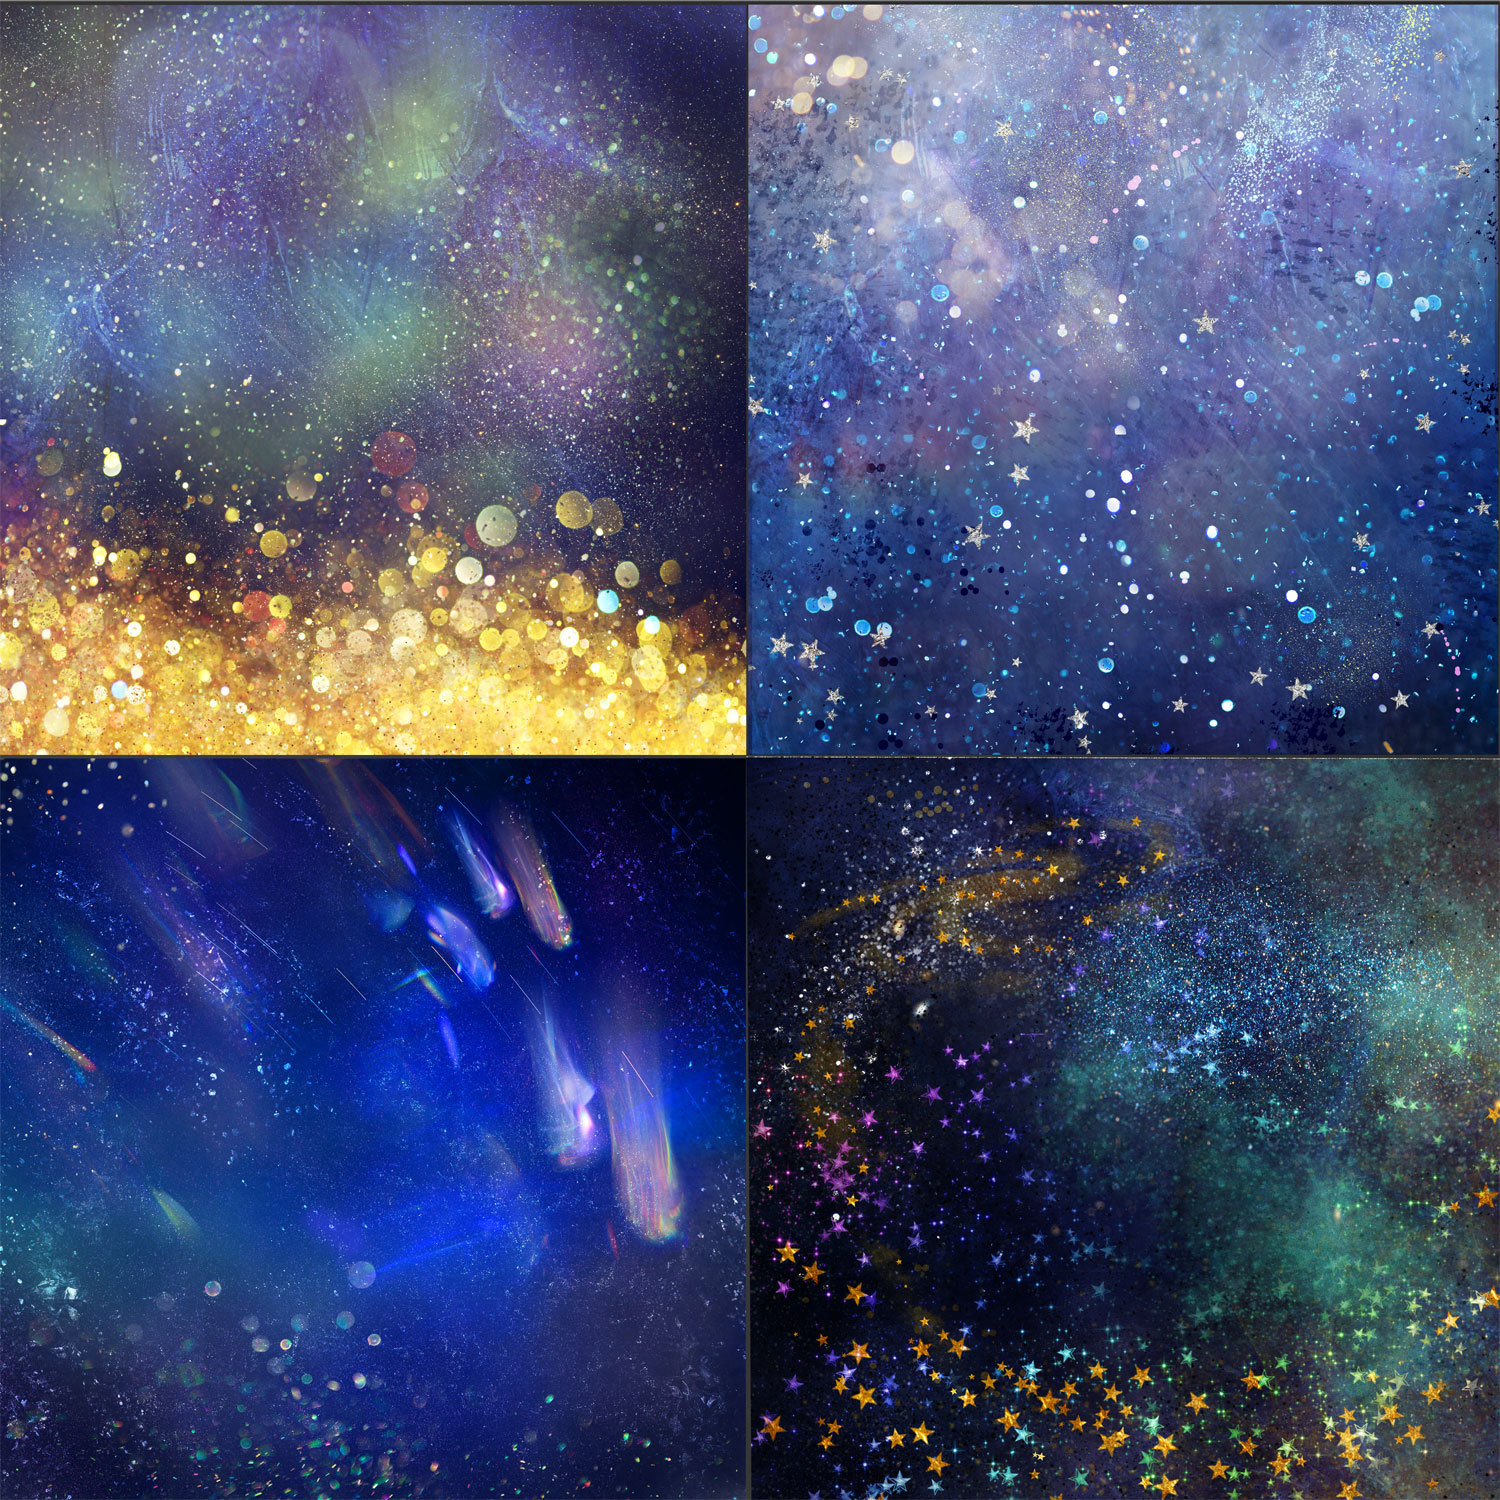 Outer Space Backgrounds example image 4